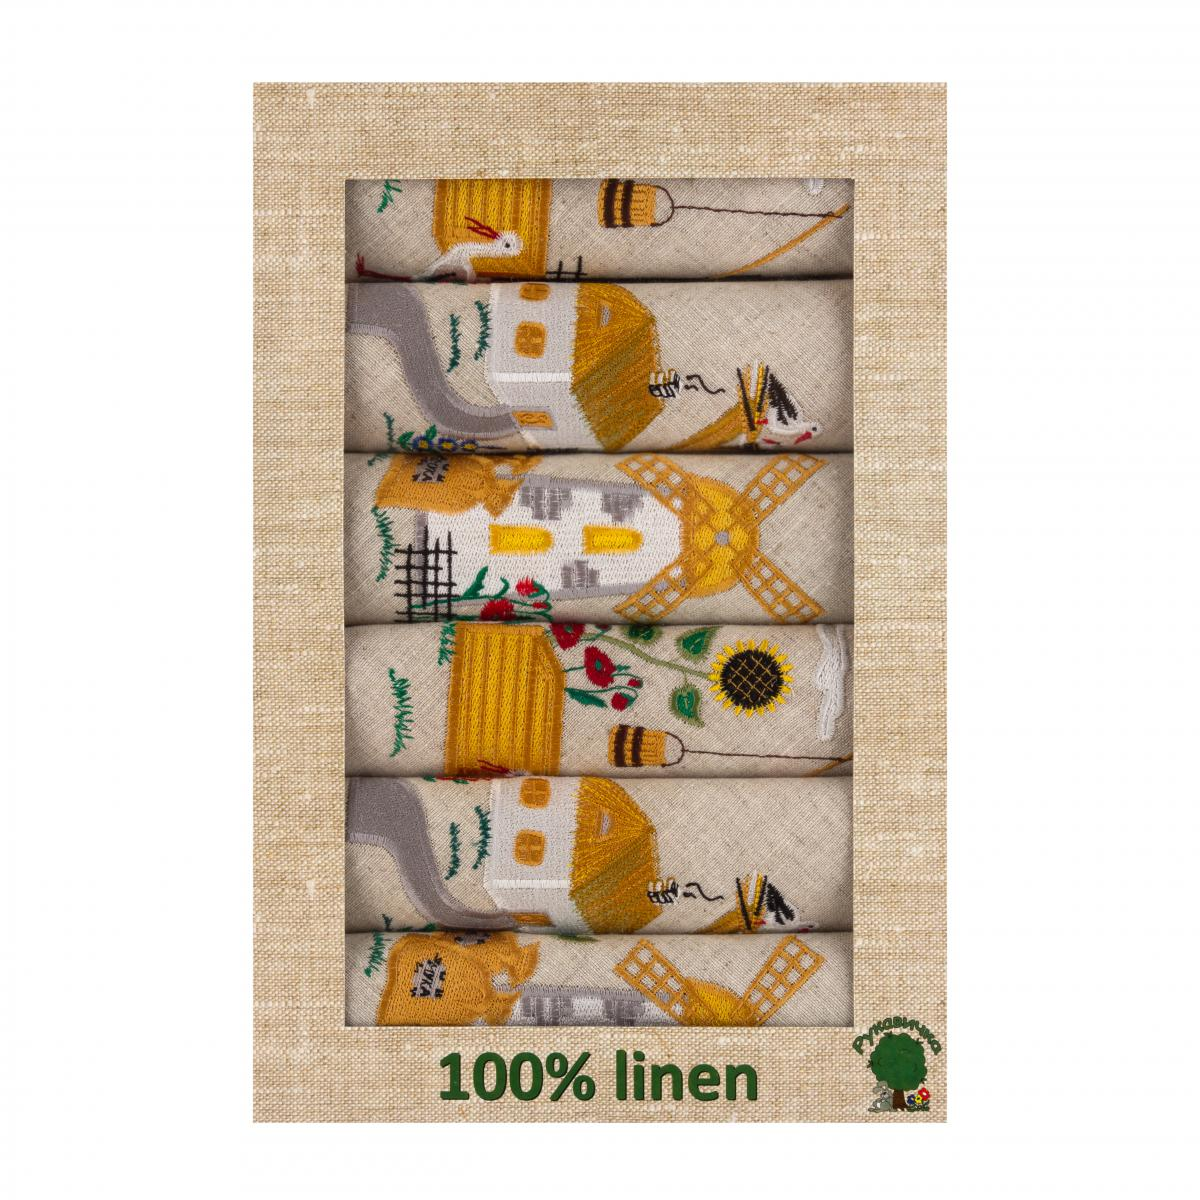 A set of linen napkins with embroidered huts